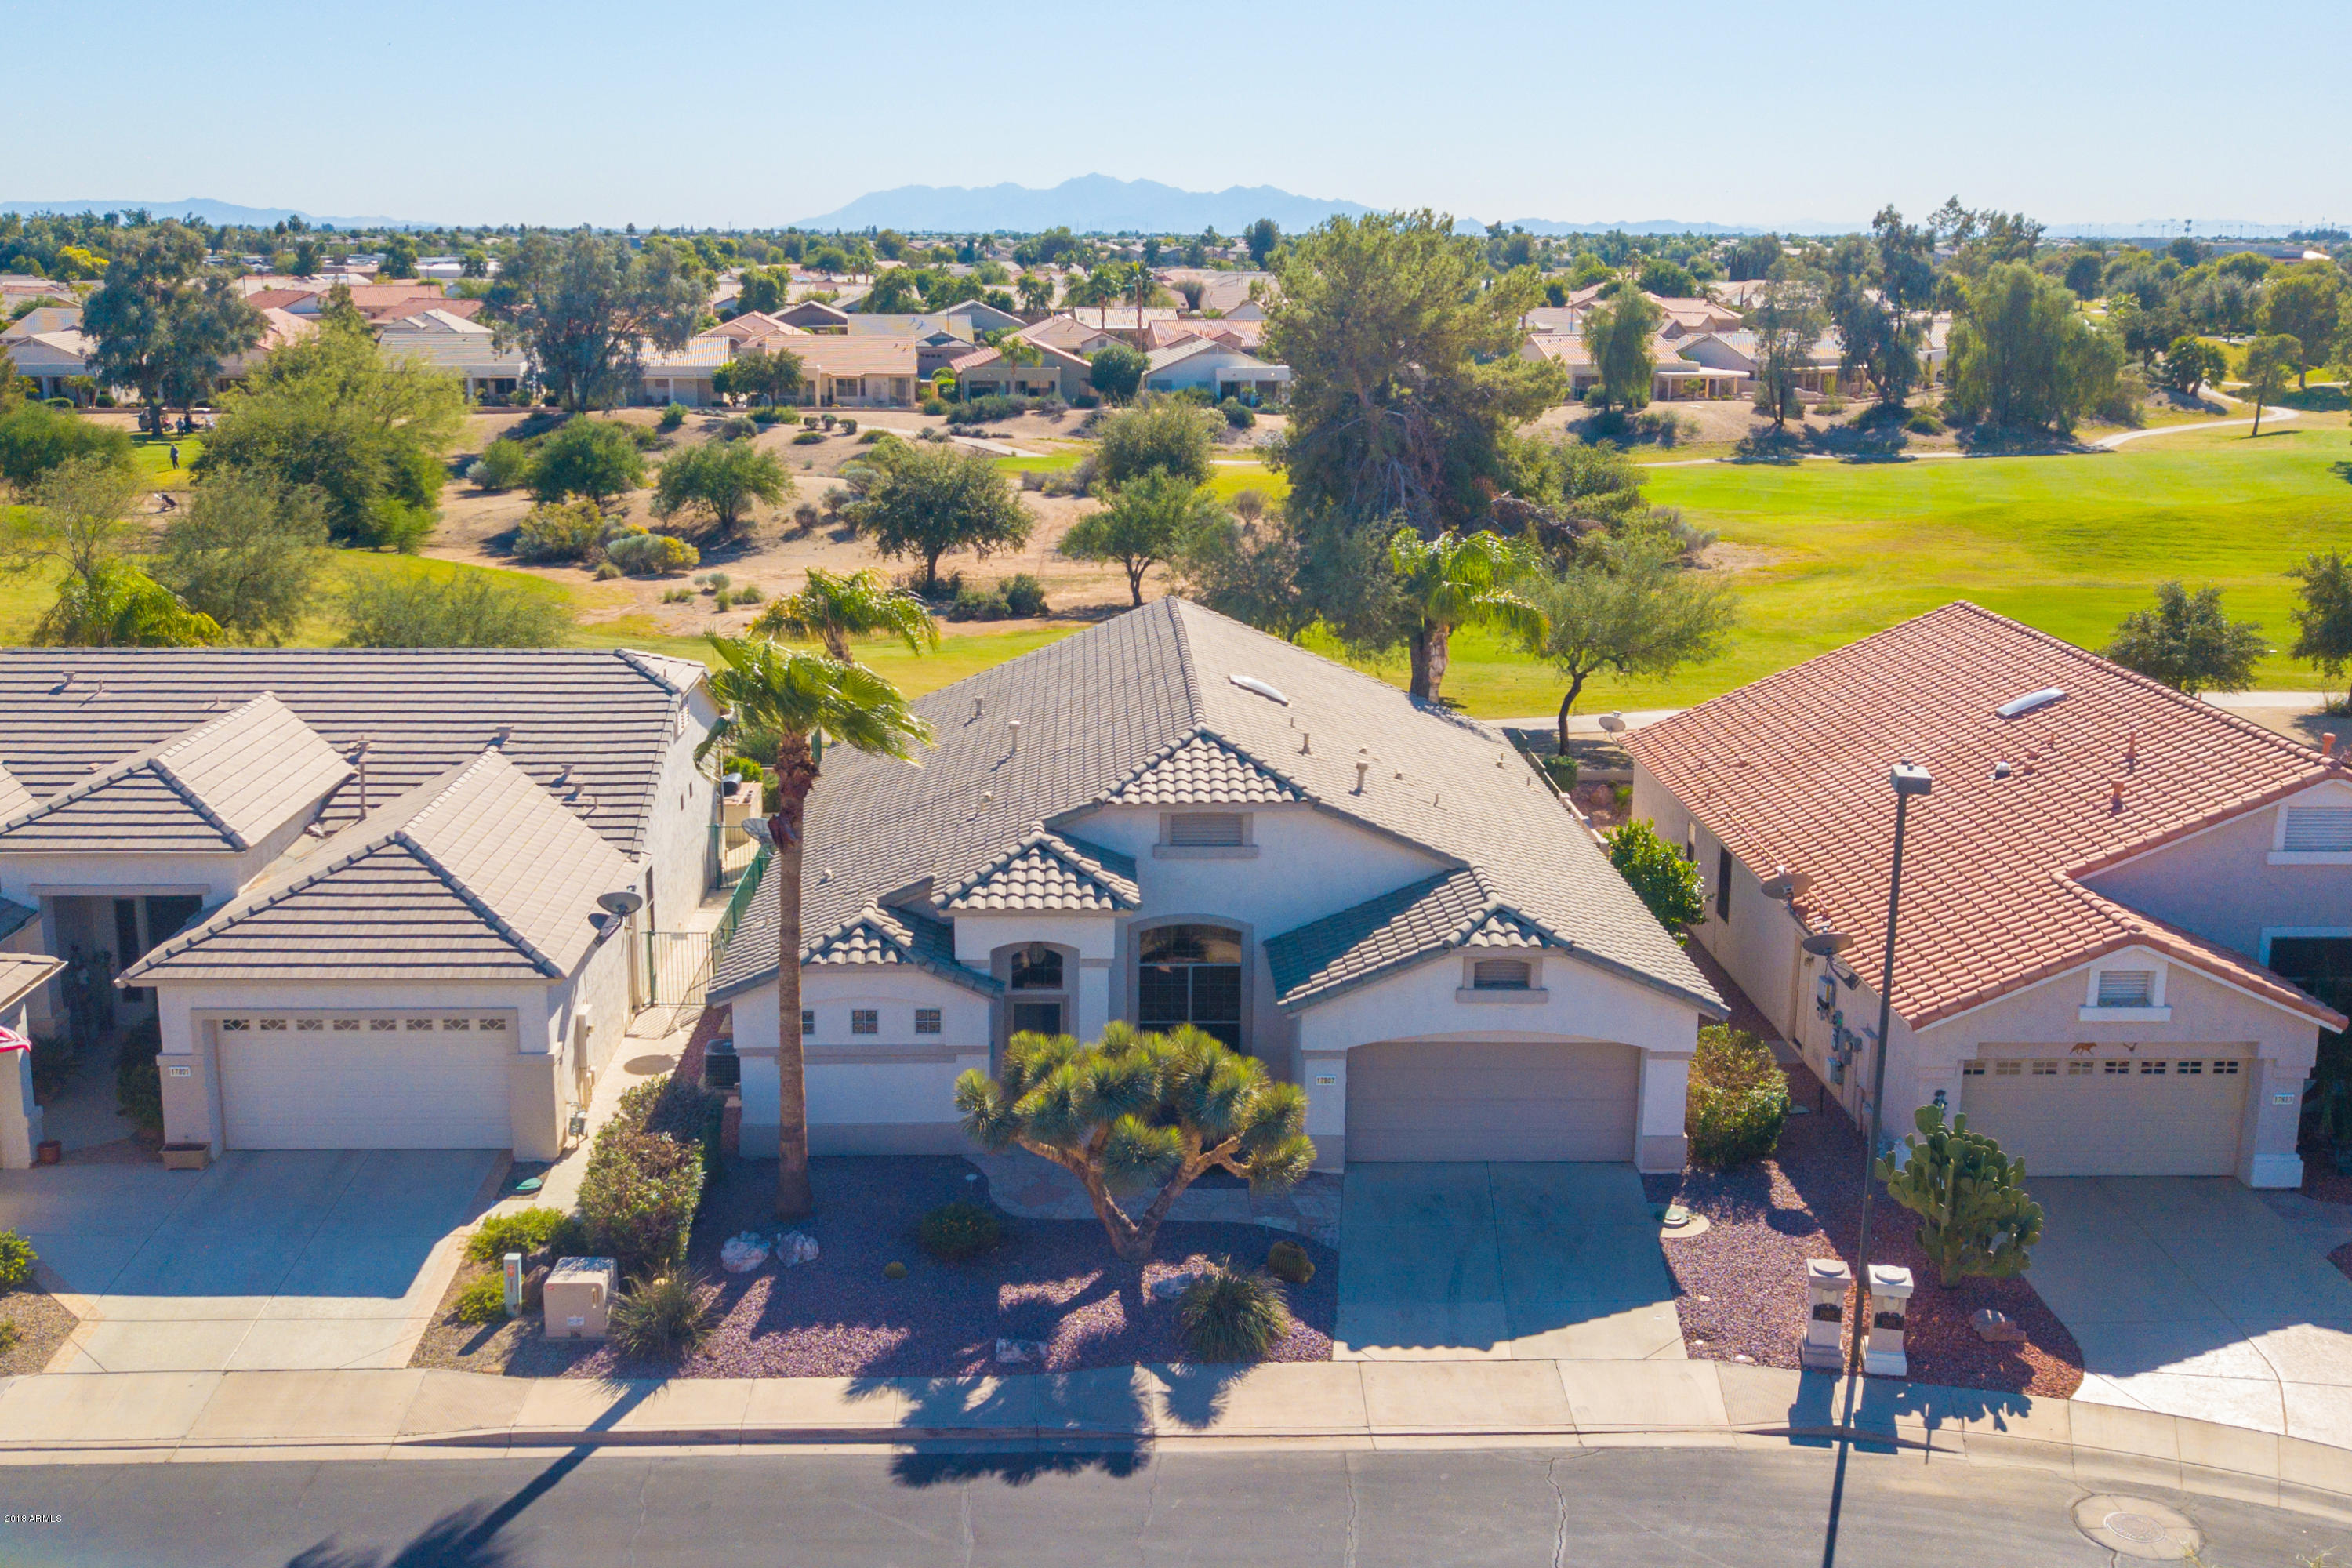 Photo of 17807 W HOLLY Drive, Surprise, AZ 85374